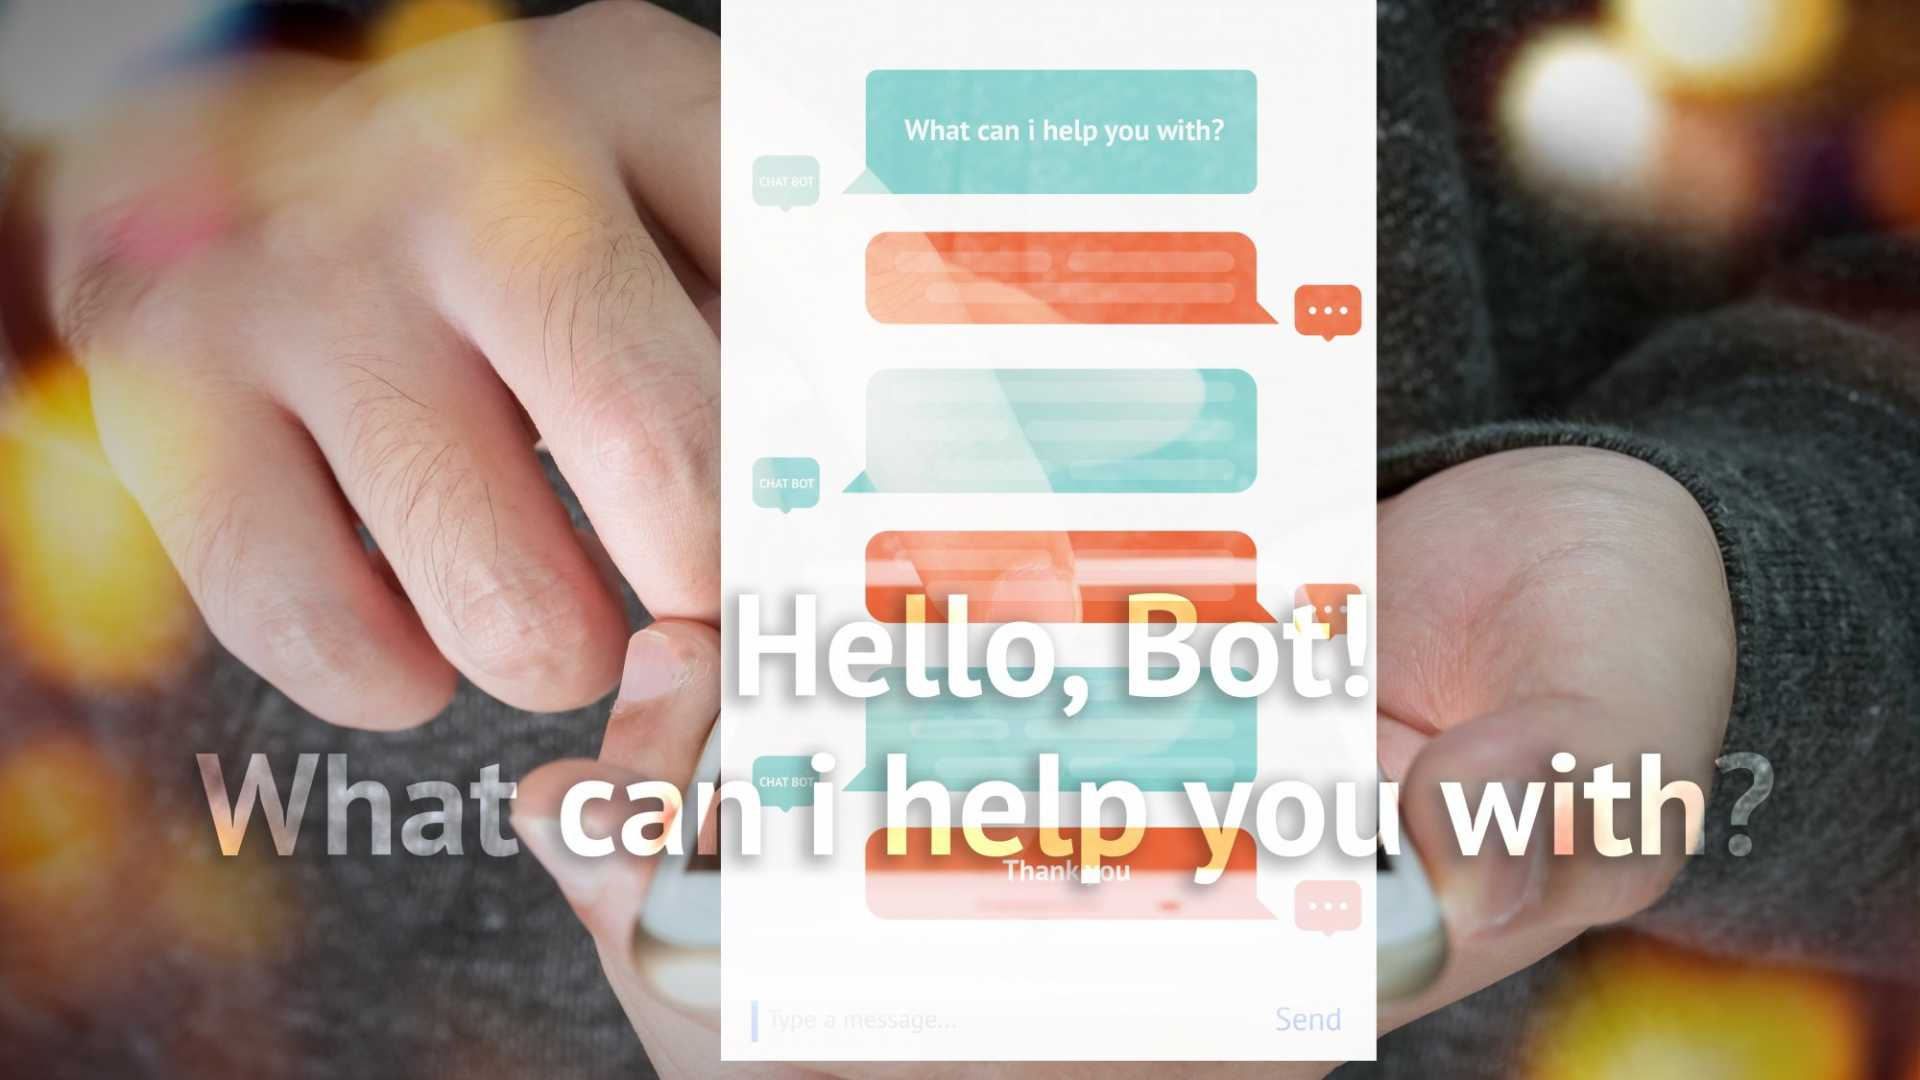 These 5 Industries Have the Most to Gain from Chatbots